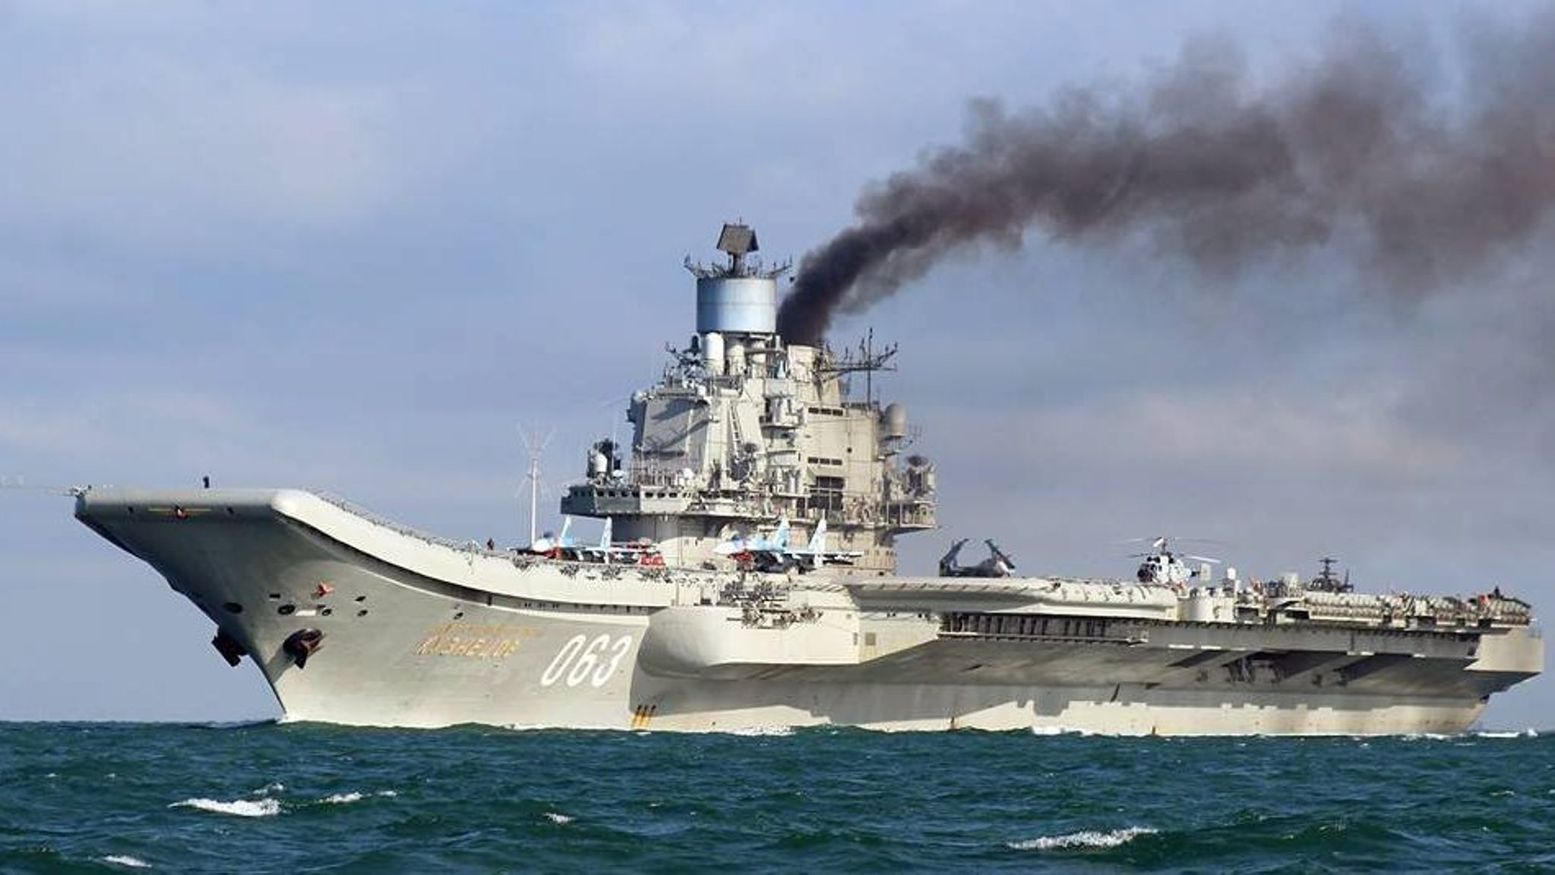 The Strange Reason Why Russia's Aircraft Carrier Leaves Smoke Trails